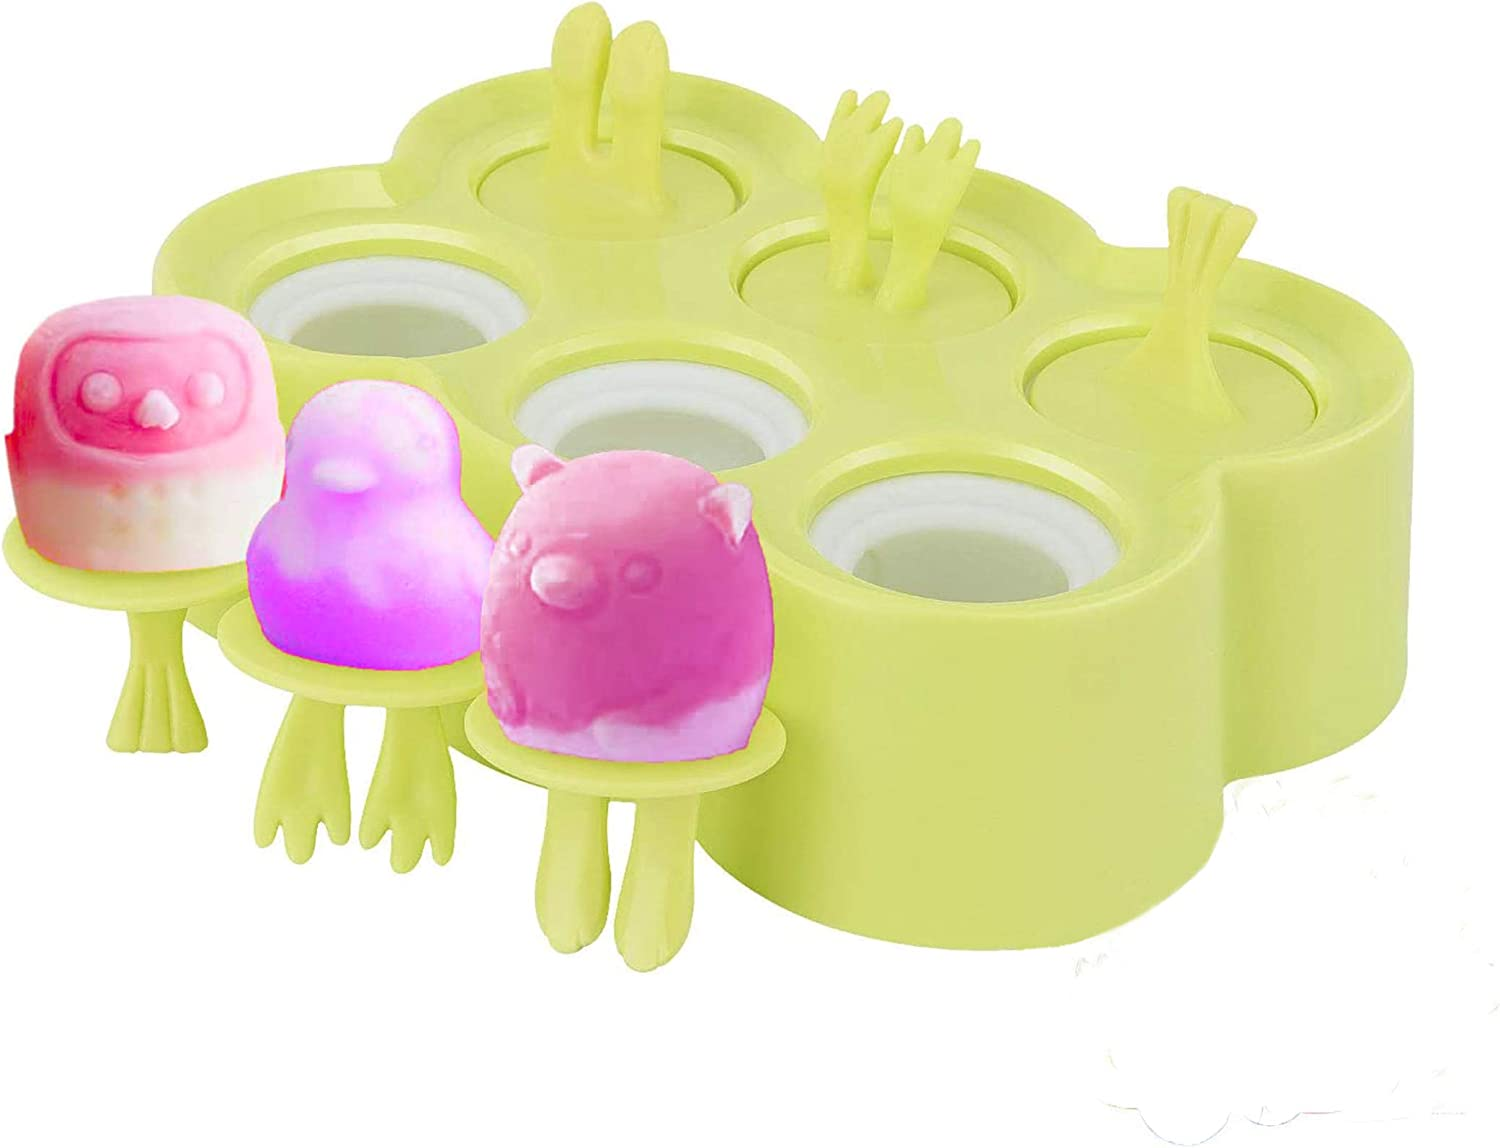 Mini Popsicle Mold 6 Cavities, Reusable Cartoon DIY Ice Pop Molds Homemade Silicone Popsicle Maker Kid Easy Release Ice Cream Molds for Lollipop, Animal Style Baby Food and Ice Cream Tray, Green